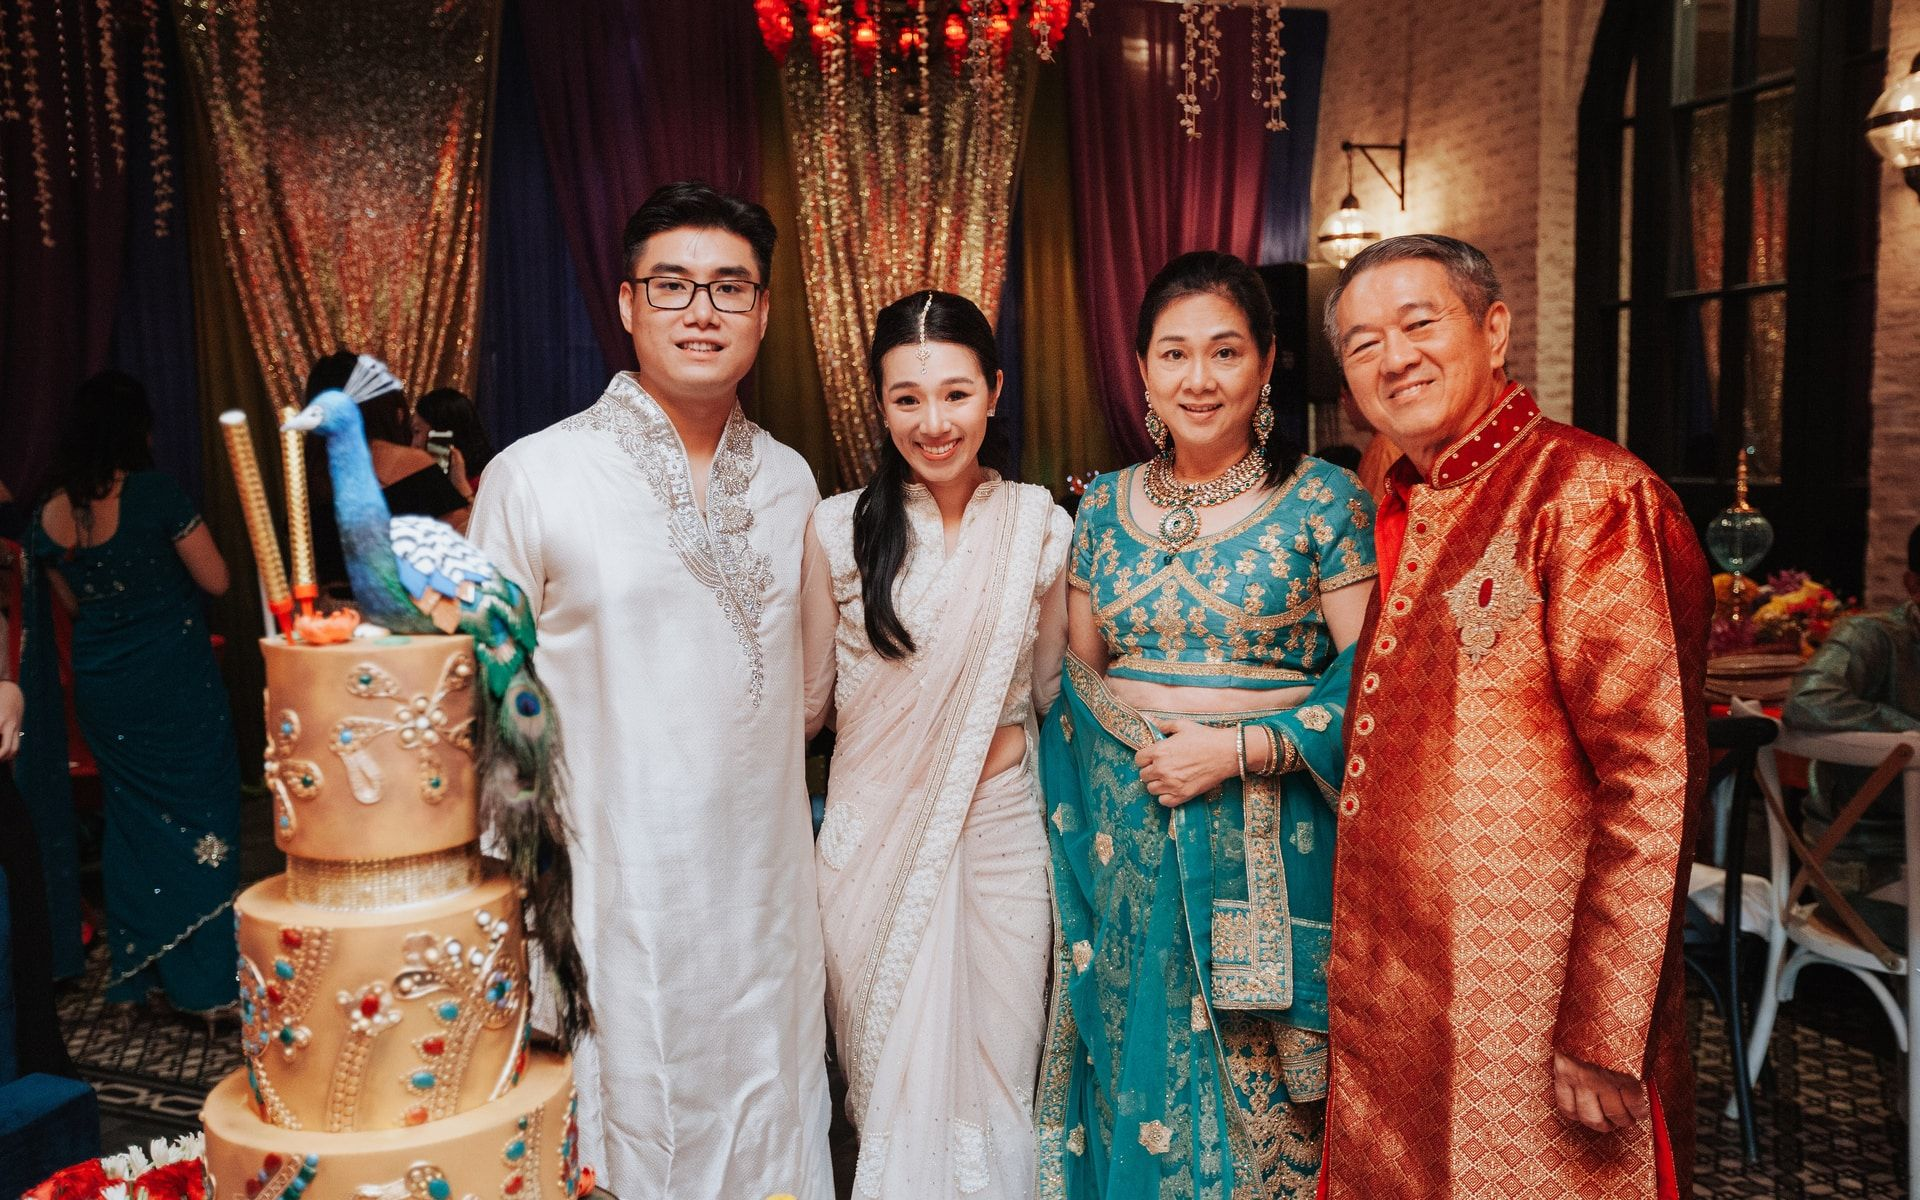 Law Wai Cheong, Diani Lee and Puan Sri Tan Bee Hong and Tan Sri Lee Kim Yew